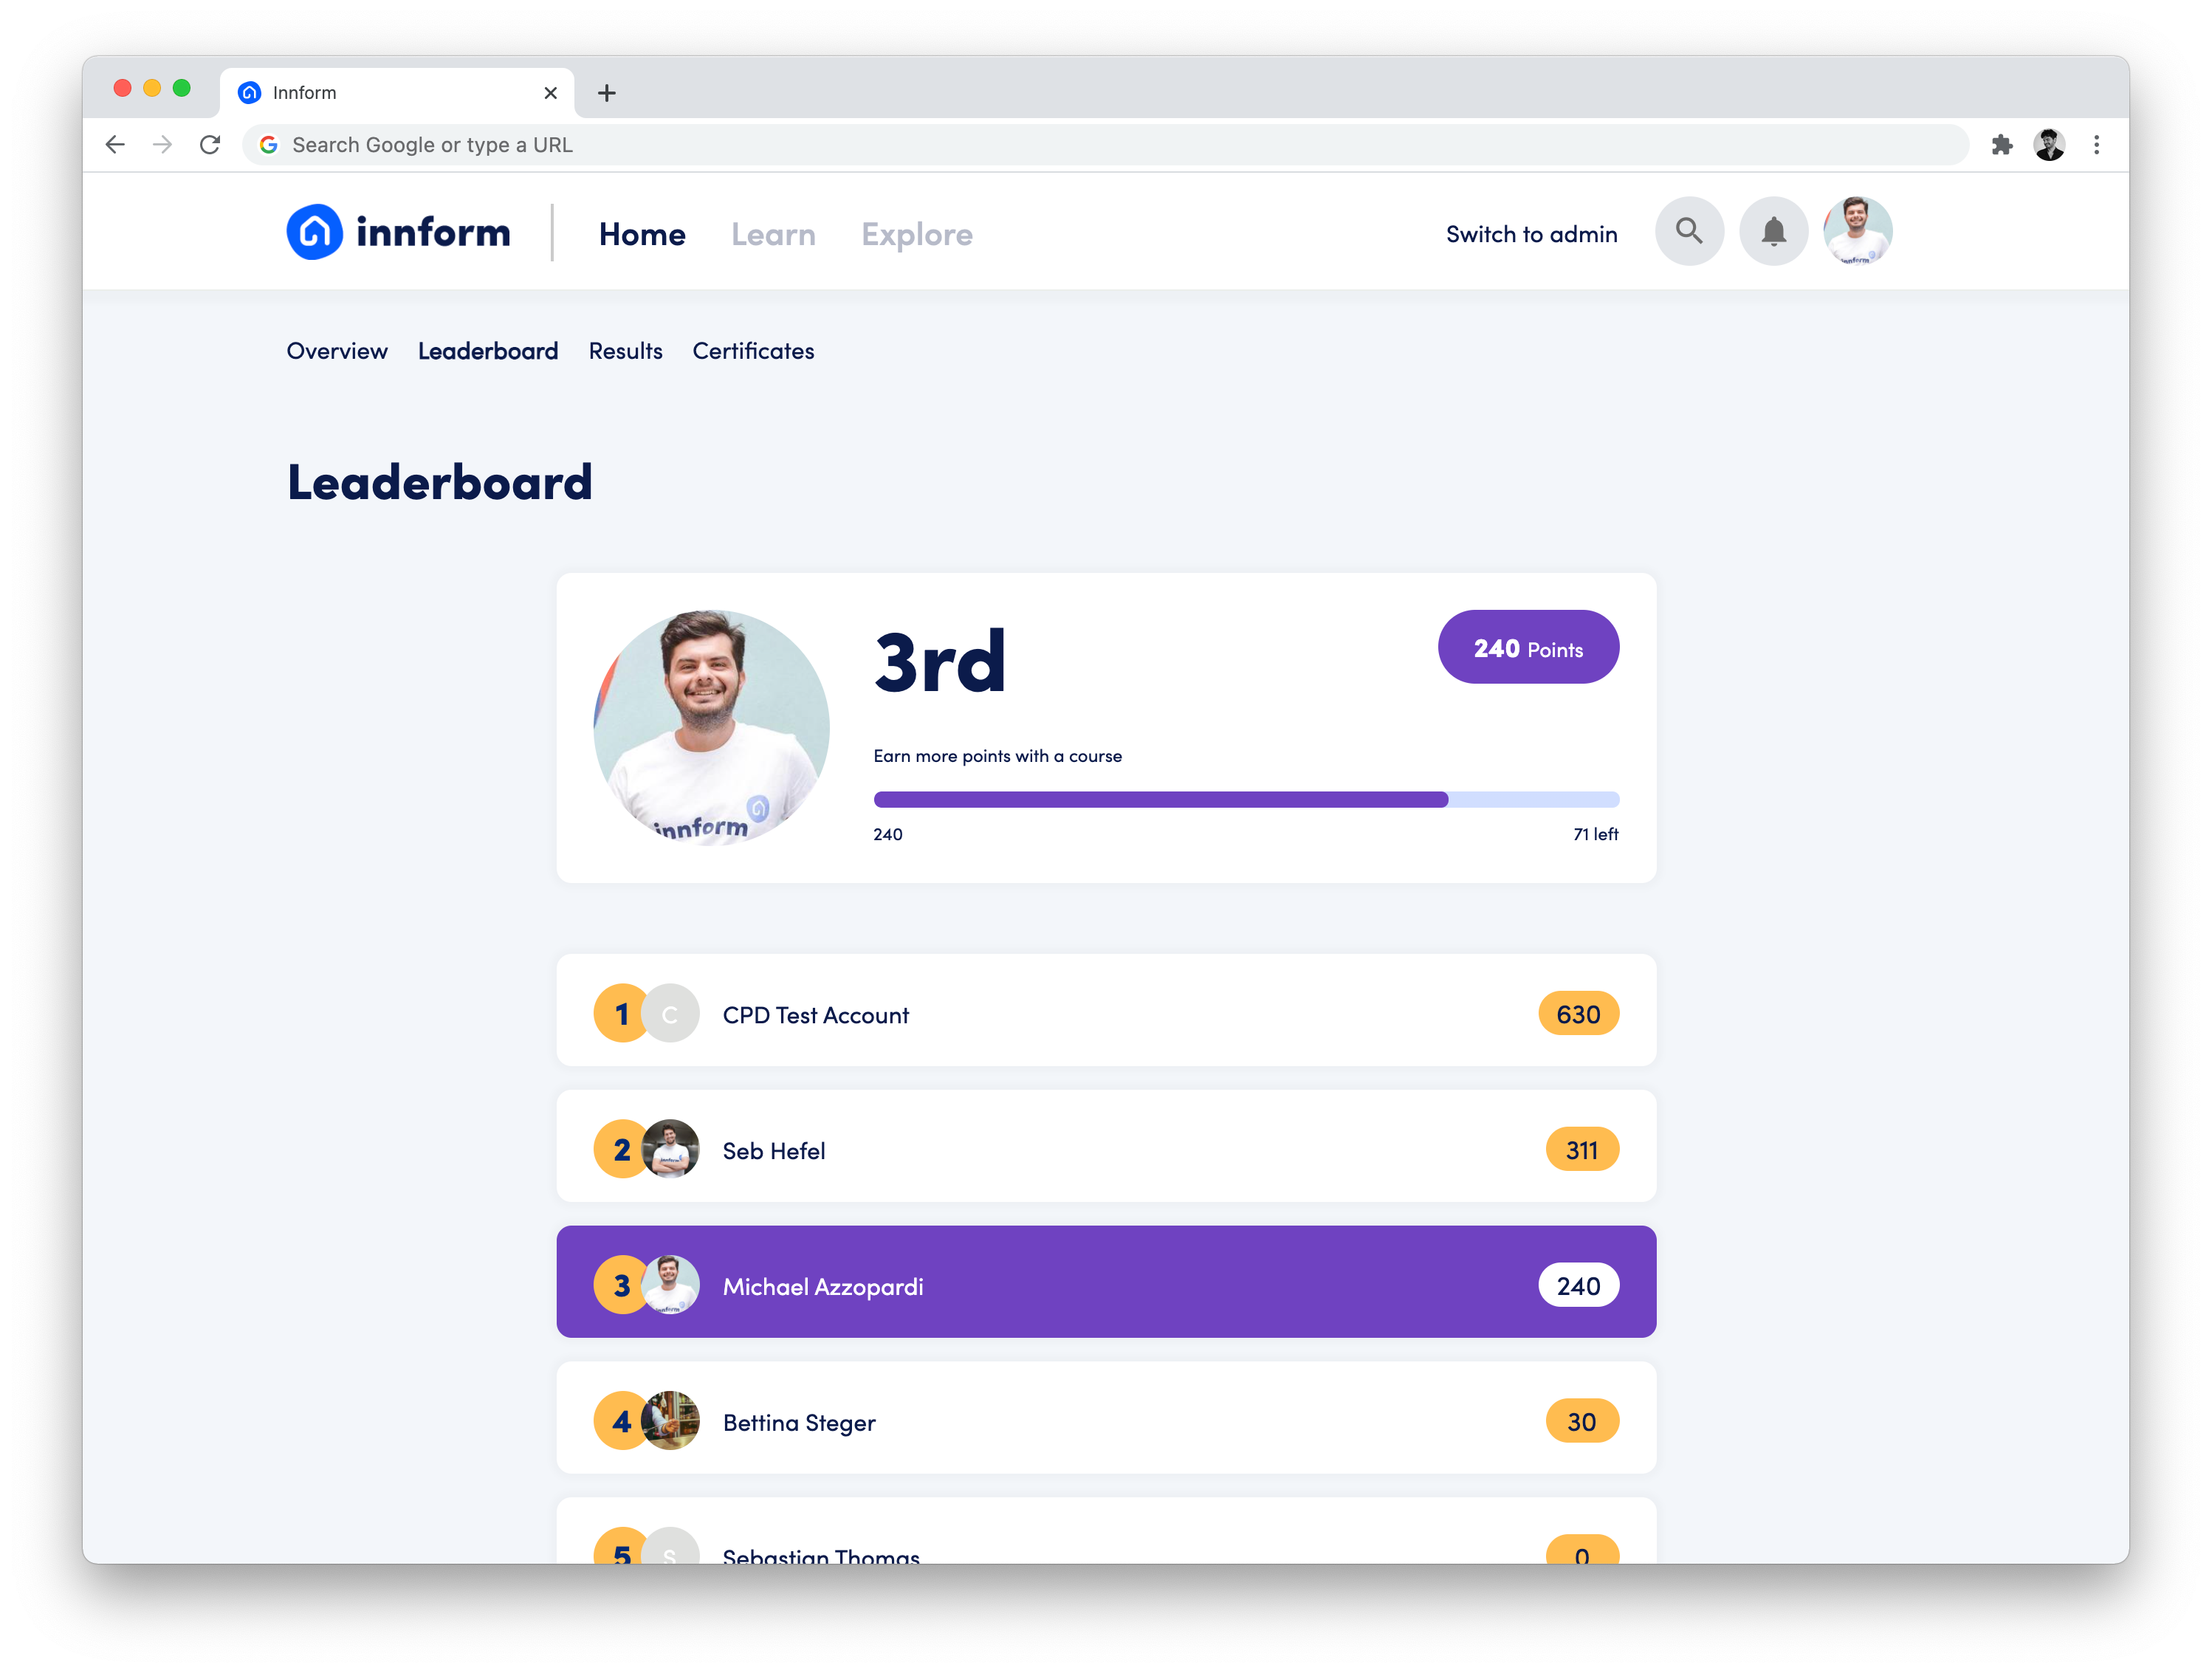 Innform's gamification features